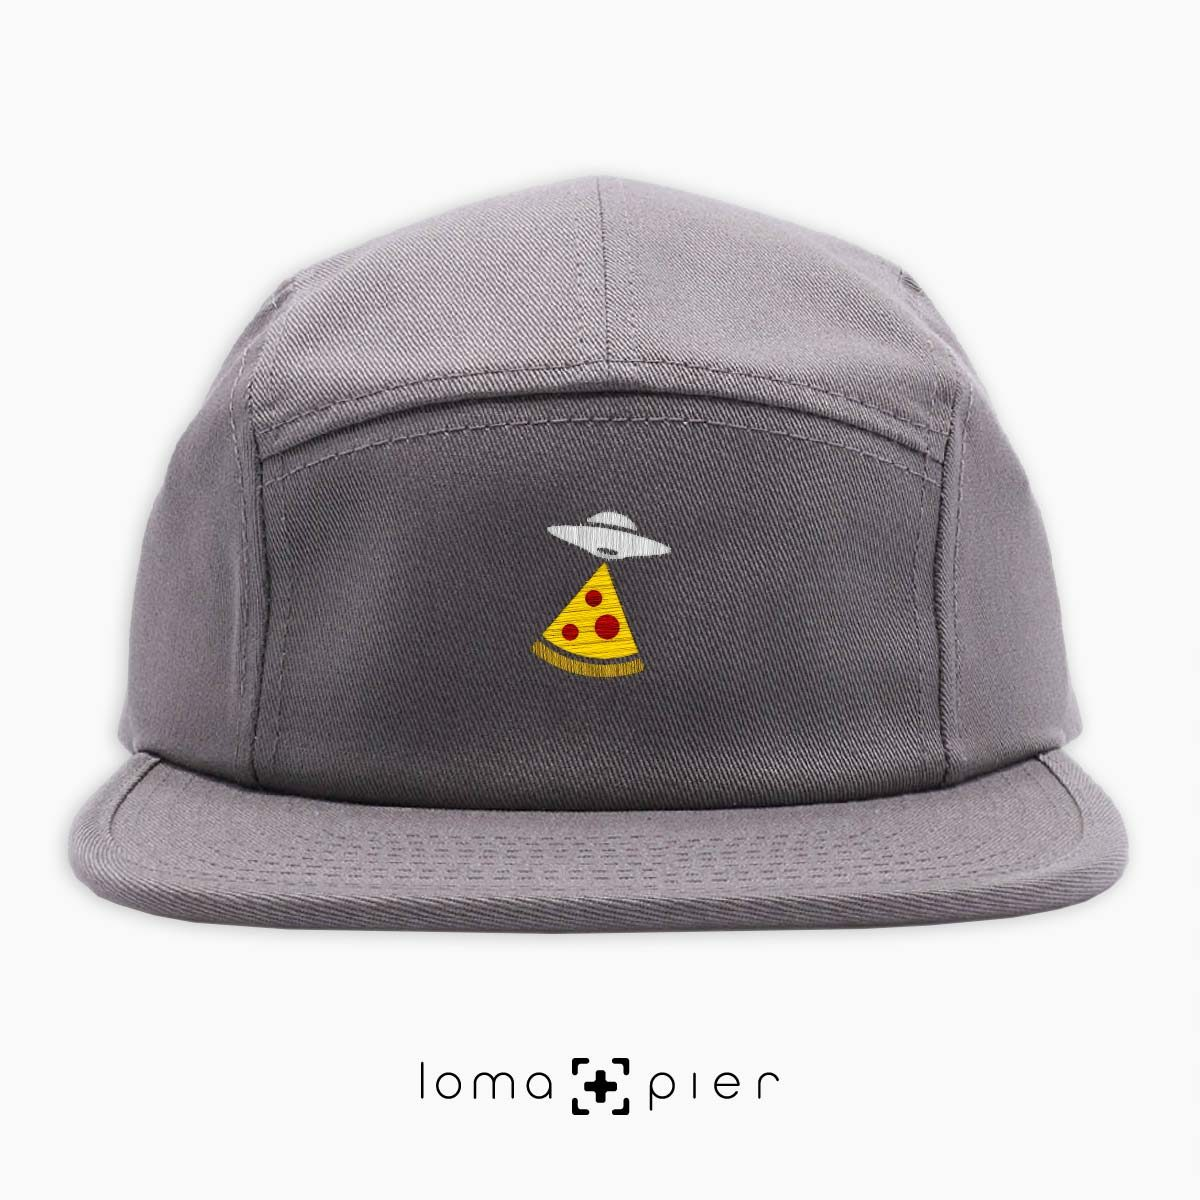 UFO PIZZA icon embroidered on a grey cotton 5-panel hat with multicolor thread by loma+pier hat store